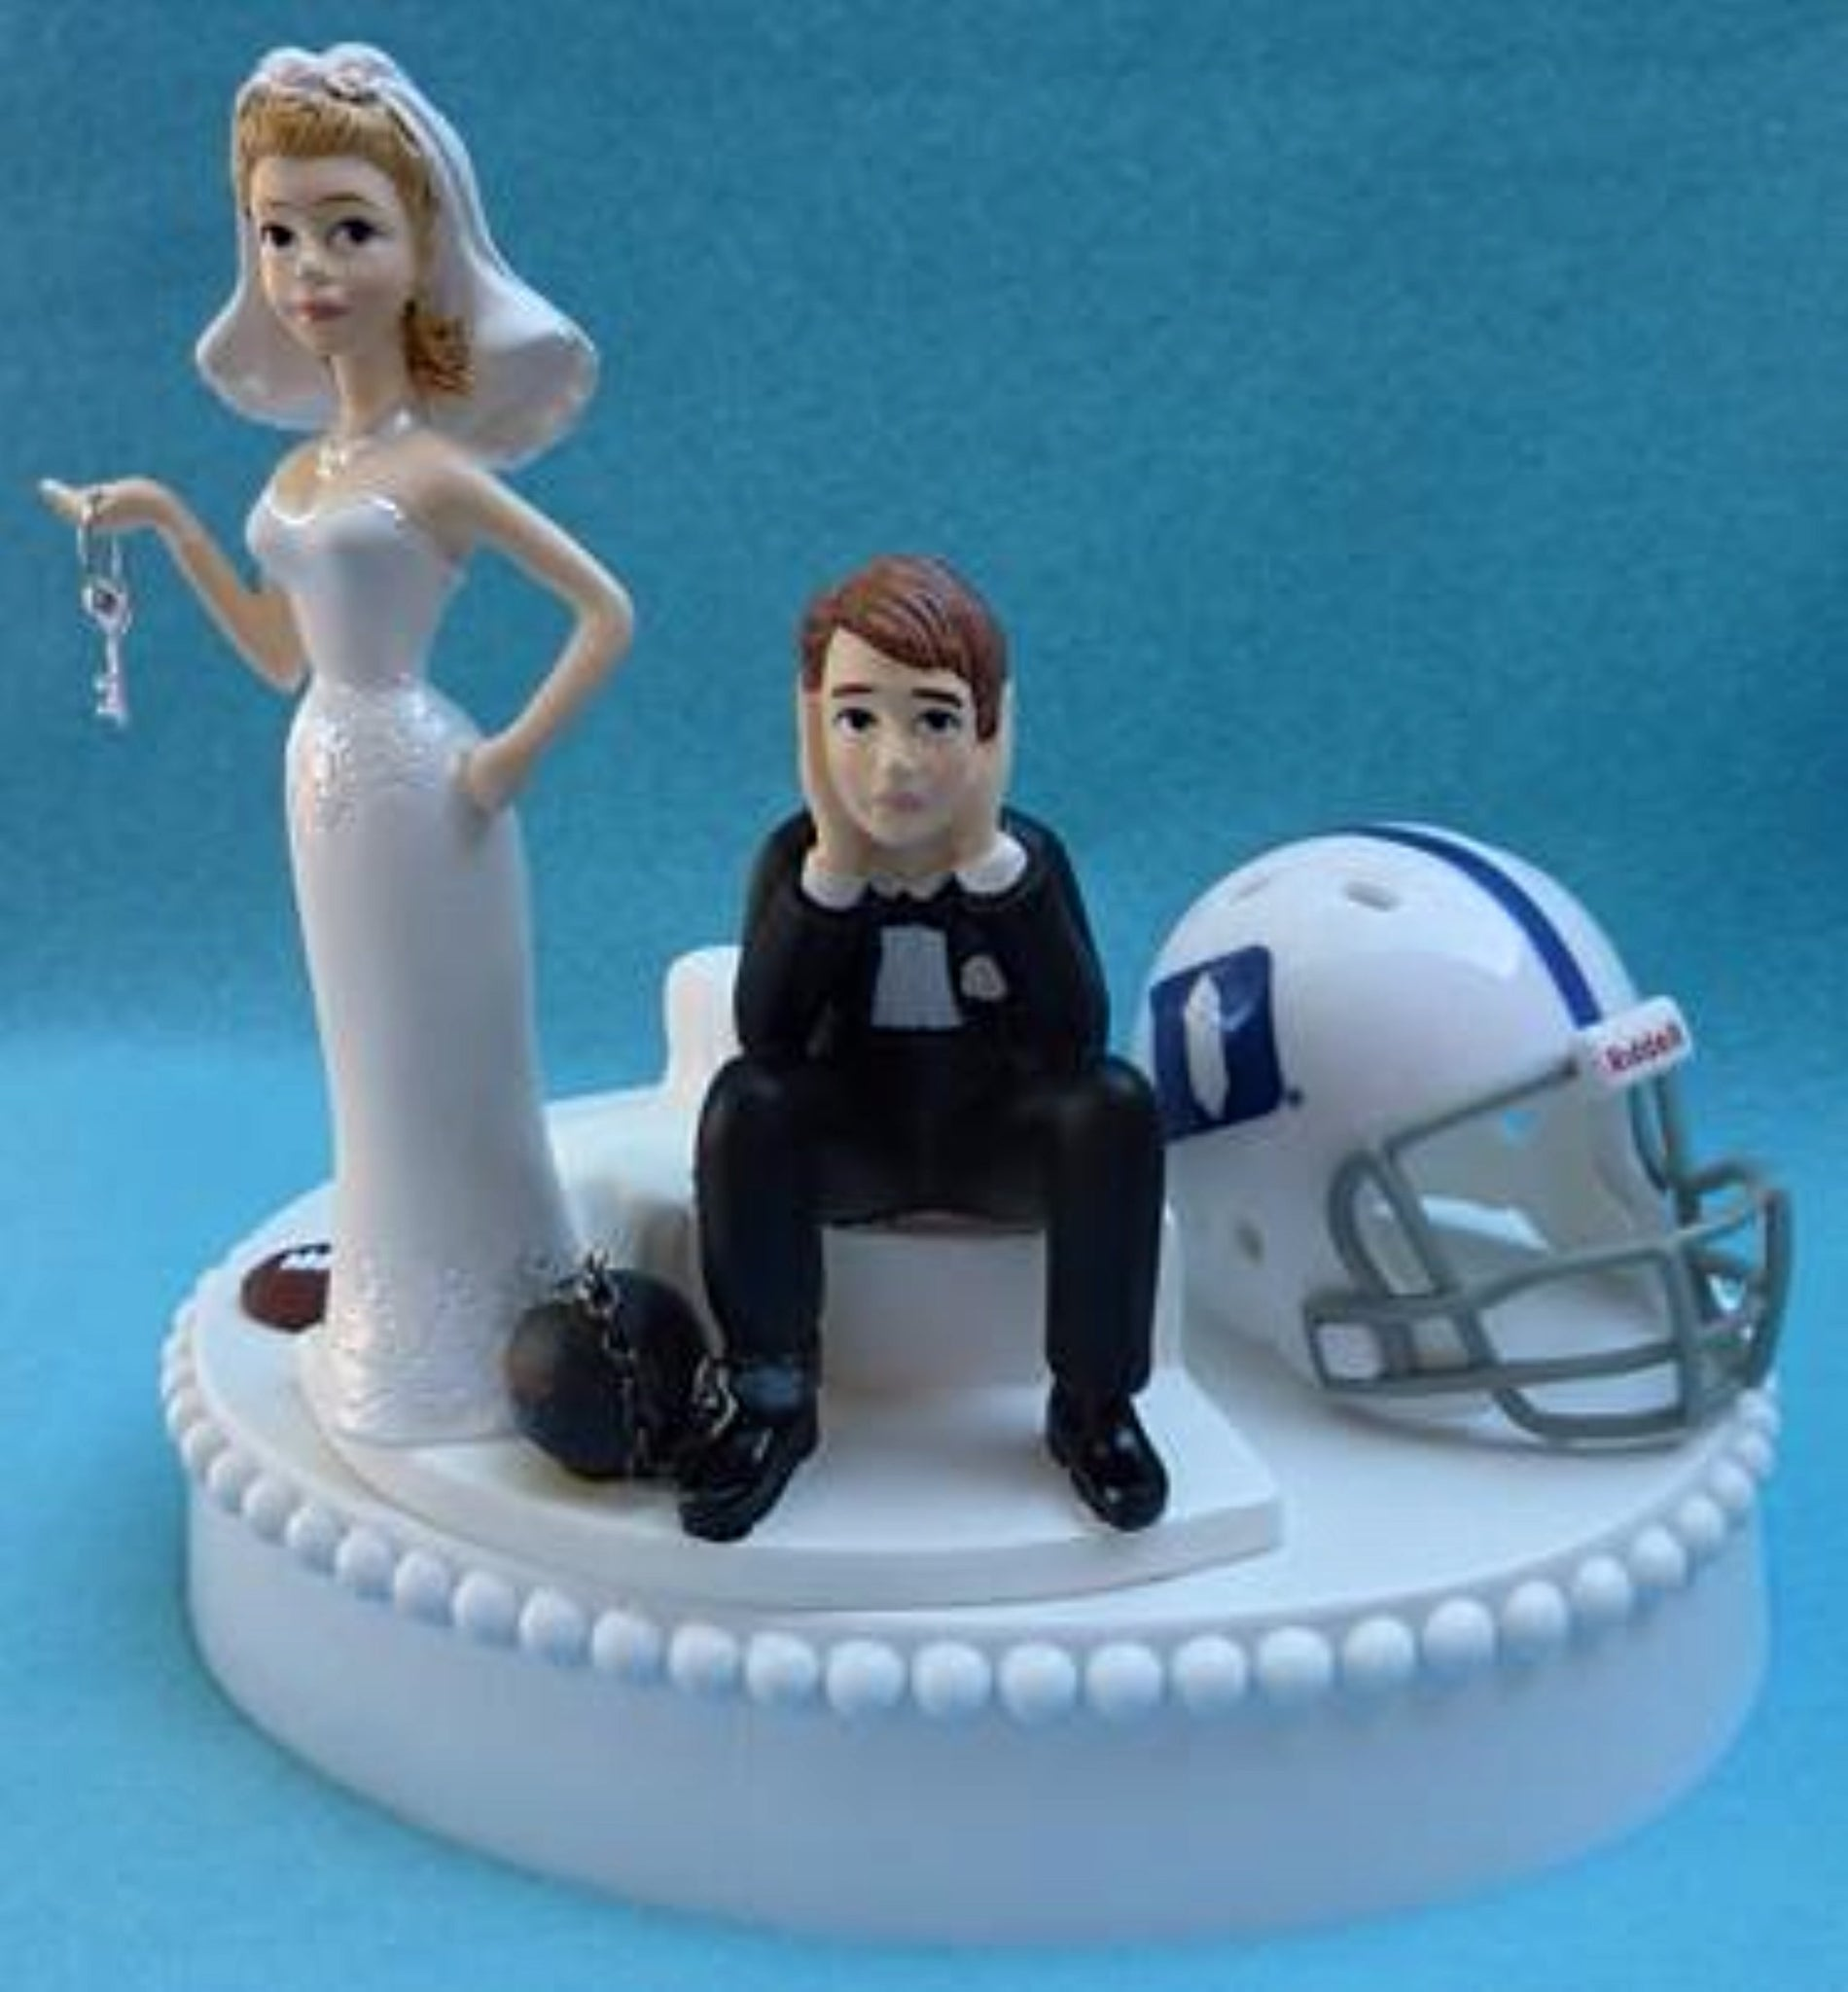 Duke University Blue Devils wedding cake topper football bride sad groom humorous ball chain key funny sports Fun Wedding Things